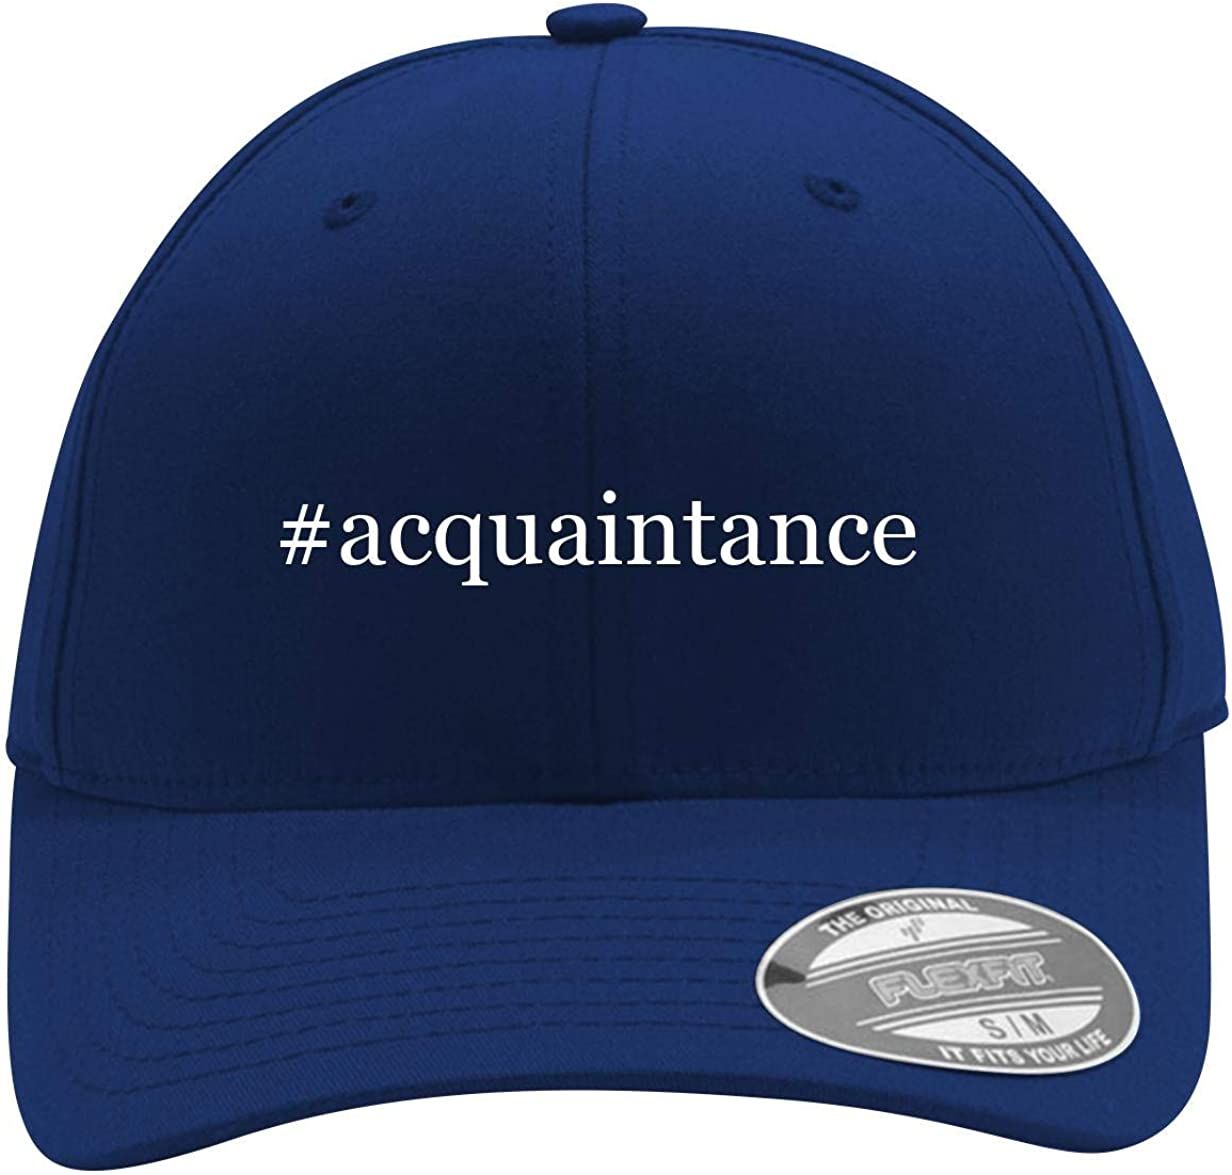 #Acquaintance - Men'S Hashtag Flexfit Baseball Cap Hat